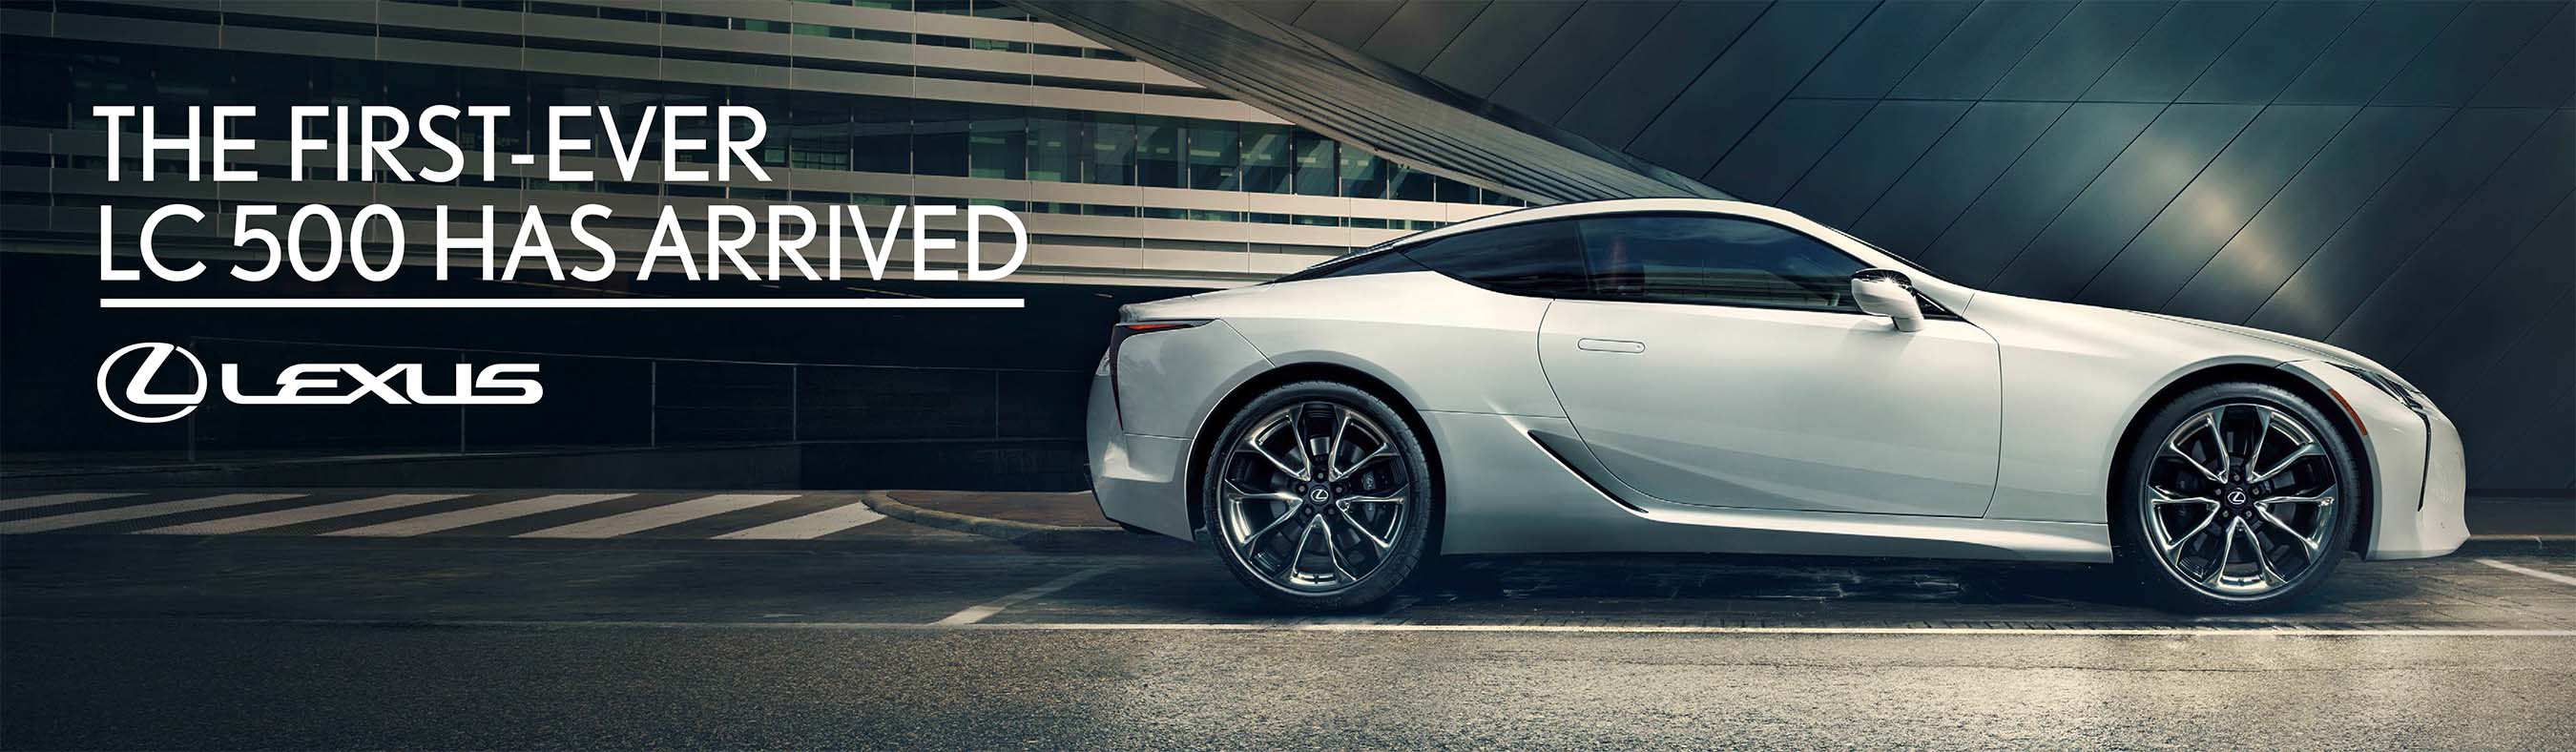 Lexus LC 500: Out-of-Home Ad